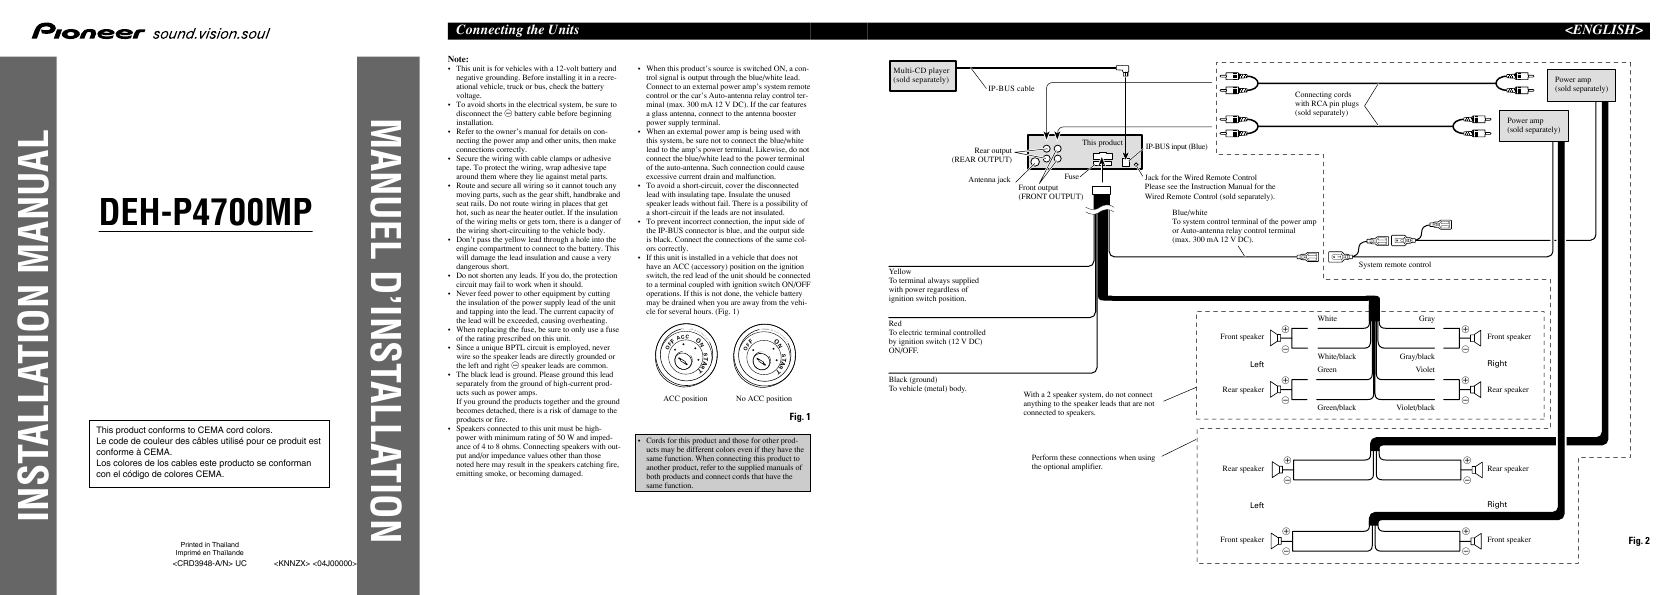 Search Stereo Amplifier User Manuals Manualsonlinecom Pioneer Deh P500ub Wiring Diagram Car System P4700mp